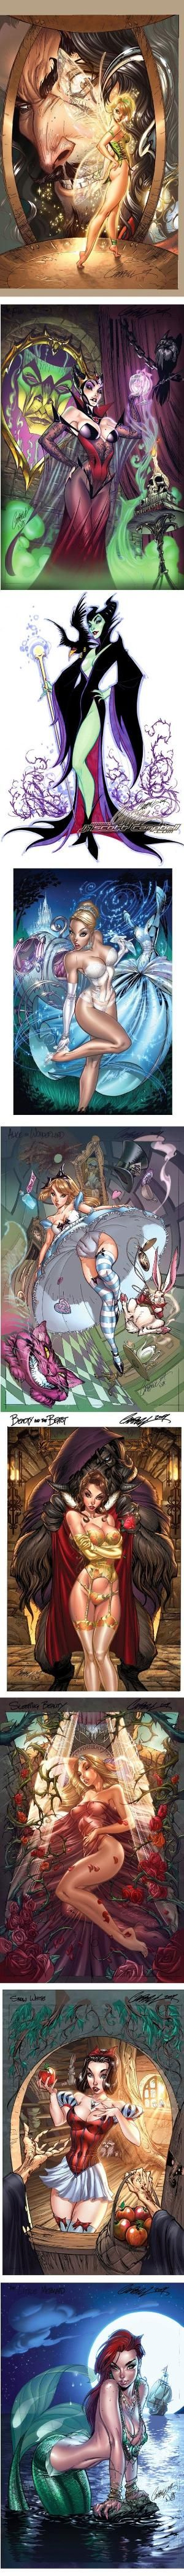 J. Scott Campbell Draws Naughty Disney Princesses by AislingH